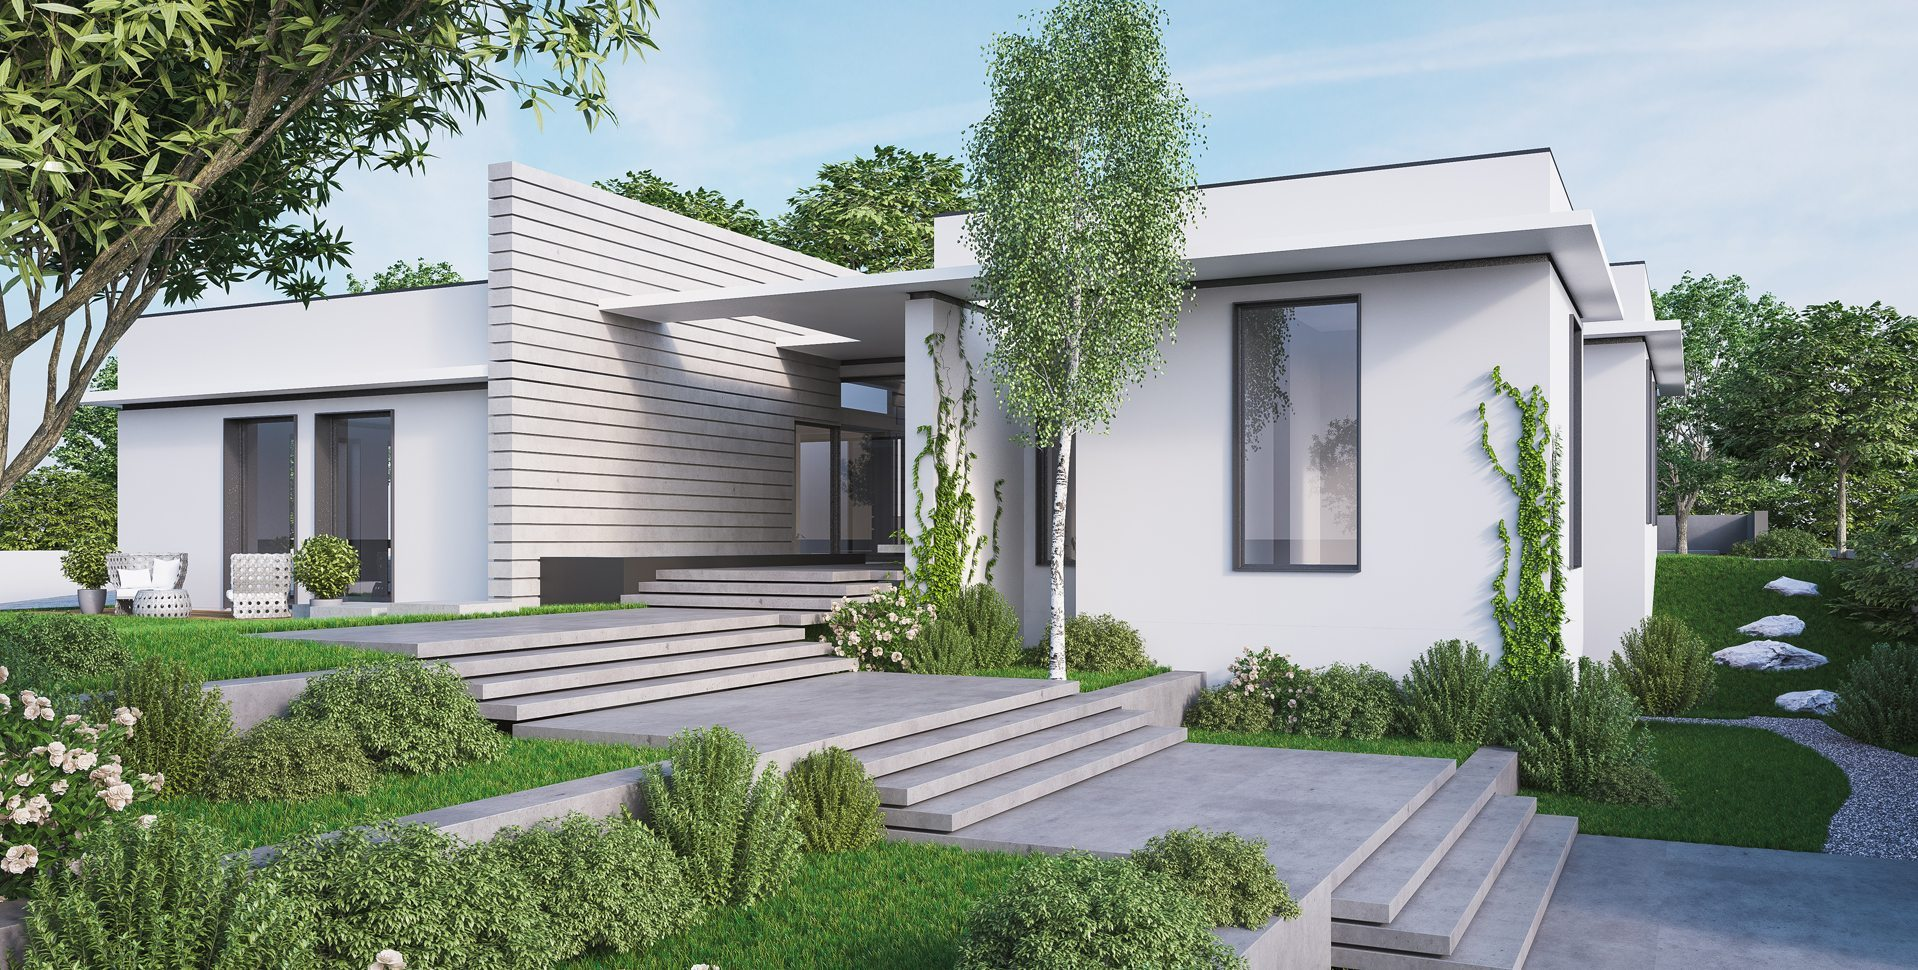 Architectural Visualization: Private Residence, Entrance Exterior View, Architect: Yulie Wollman